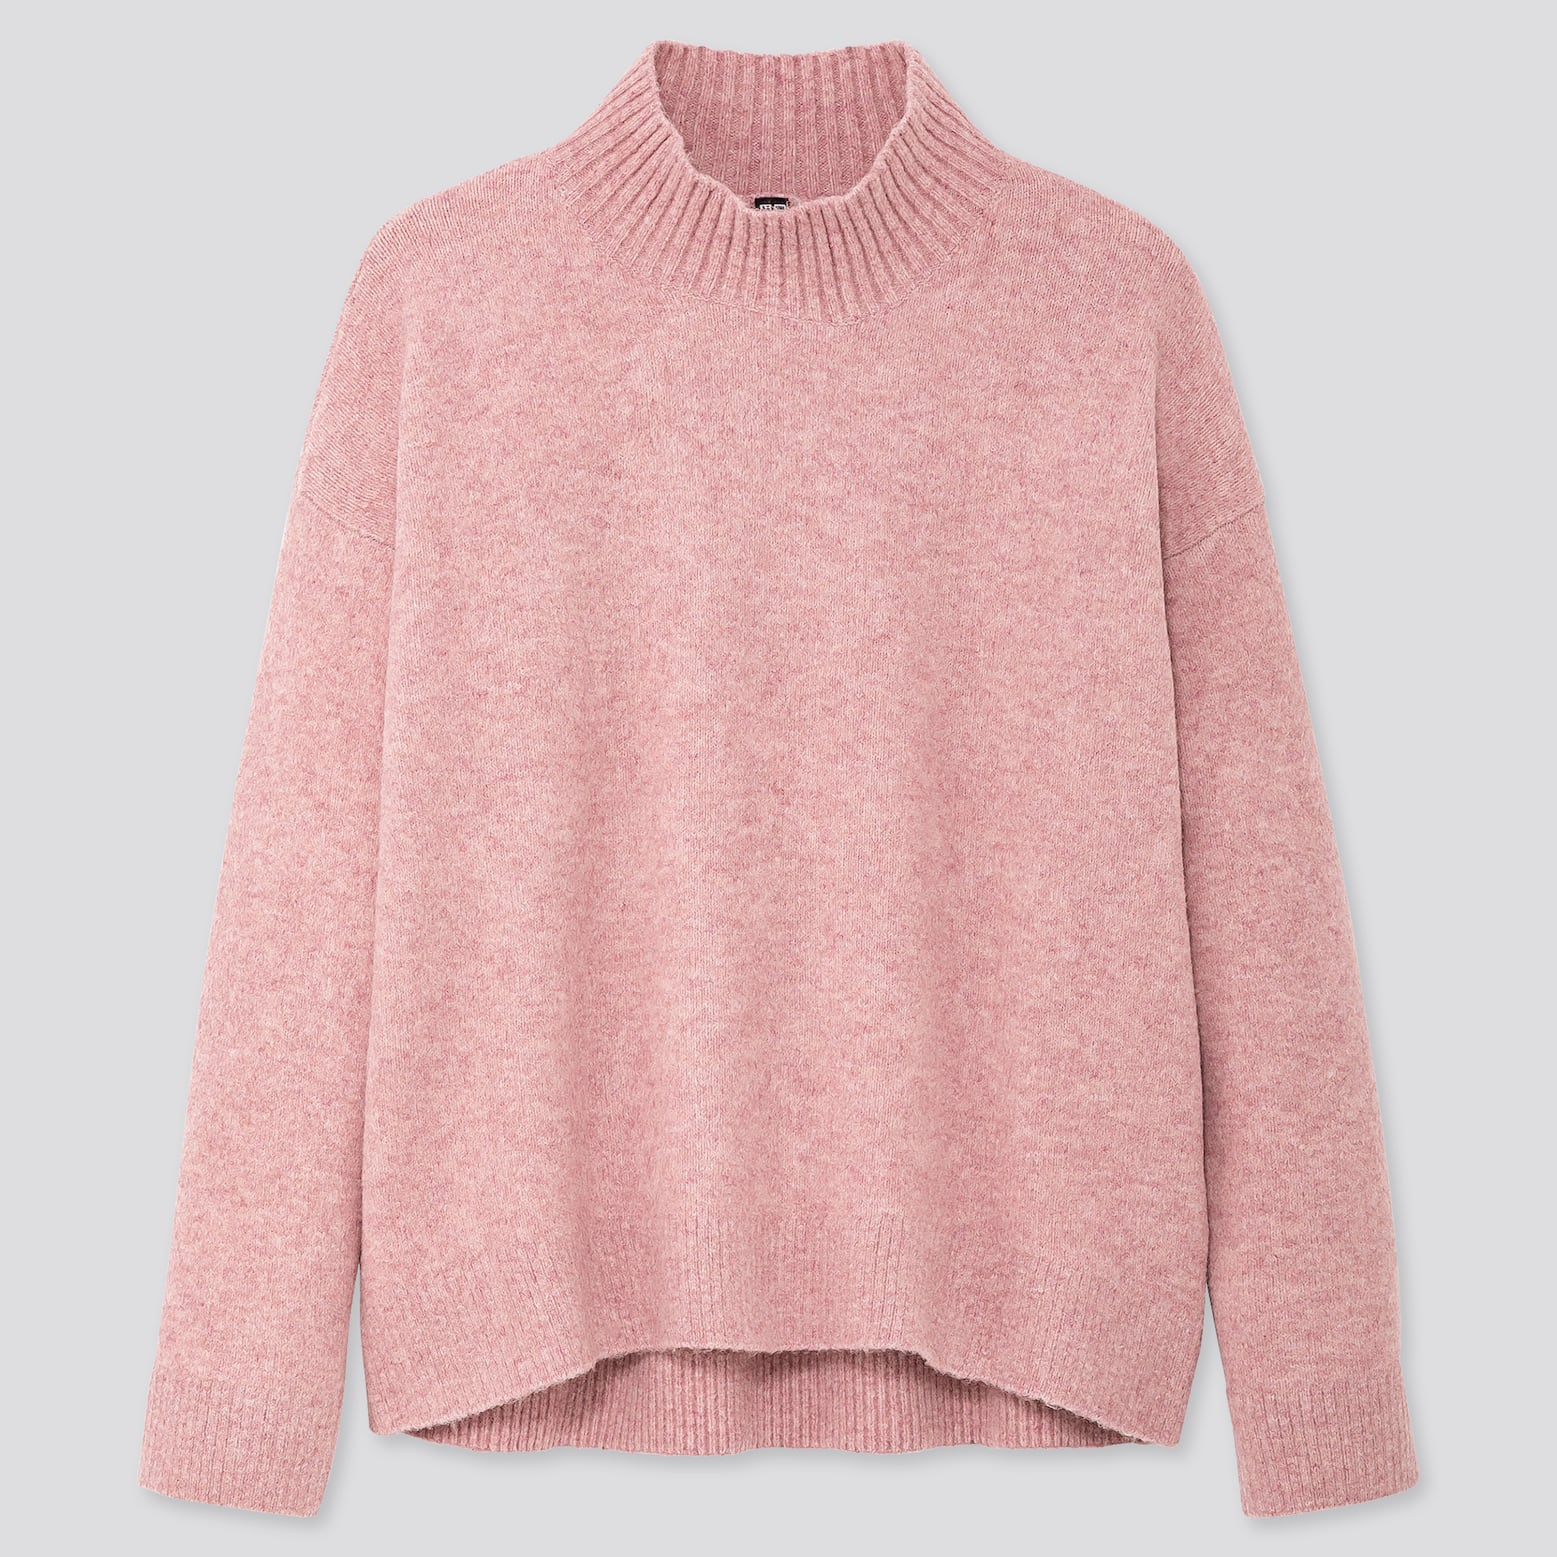 SoufflÉ Yarn Mock Neck Sweater by Uniqlo